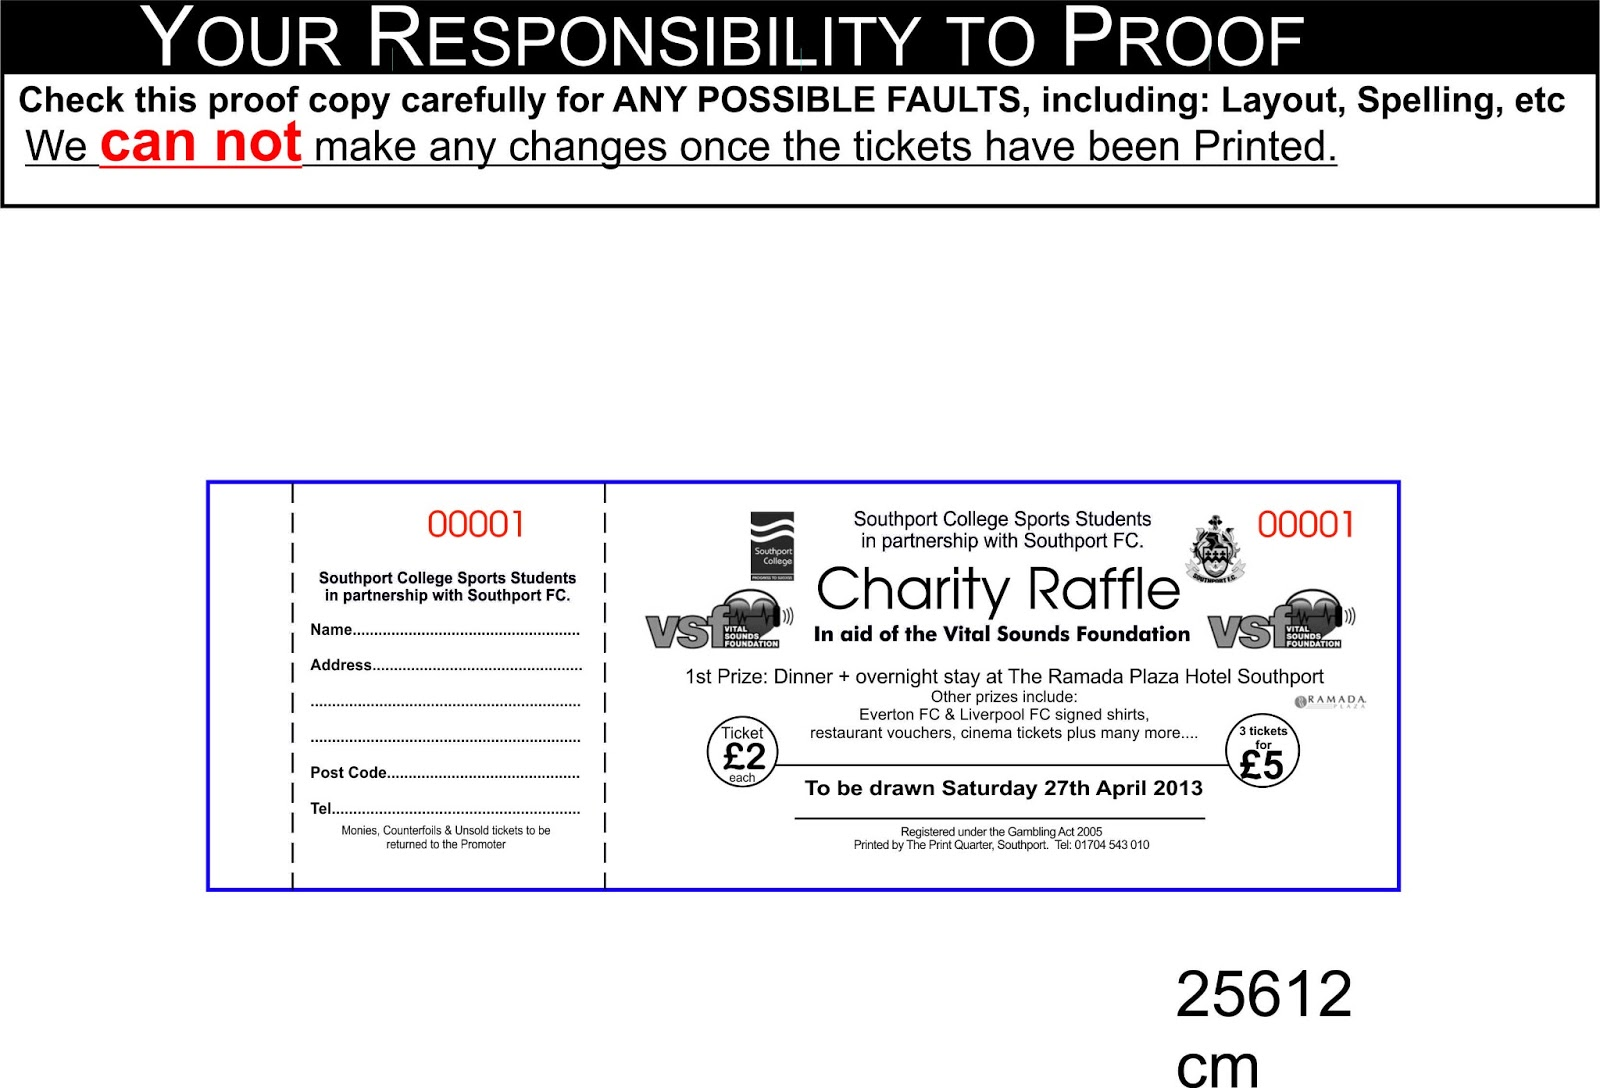 Charity Event for Vital Sounds 2013